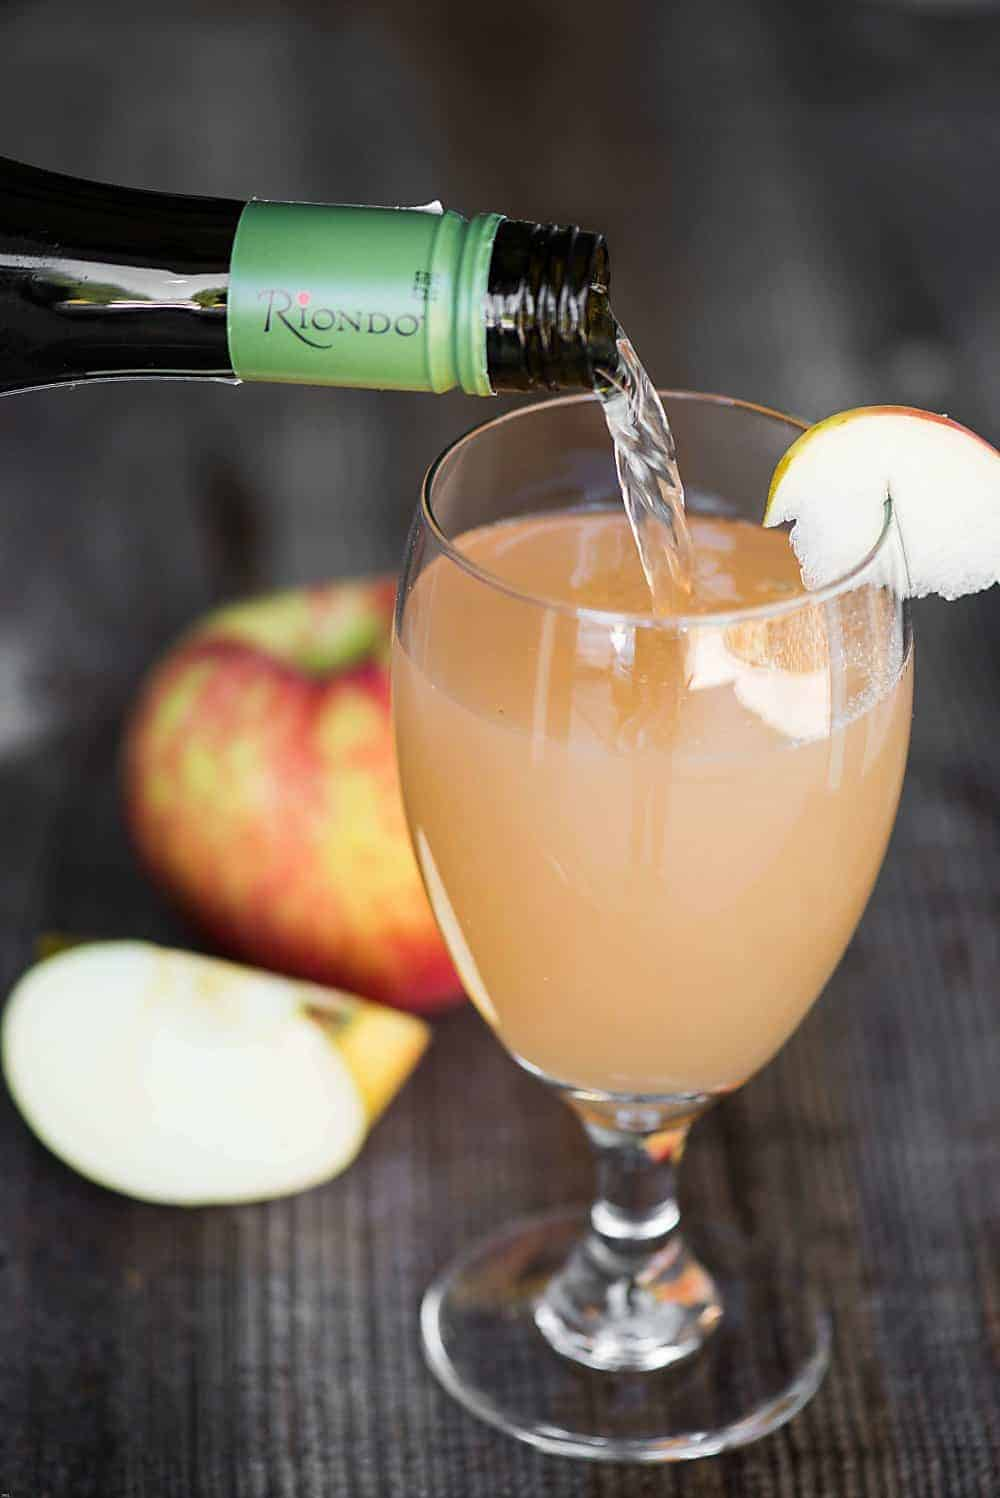 Spiced Apple Prosecco is a quick and easy drink full of fall flavor. Prosecco cocktails are perfect for holiday gatherings or relaxing after a busy day.